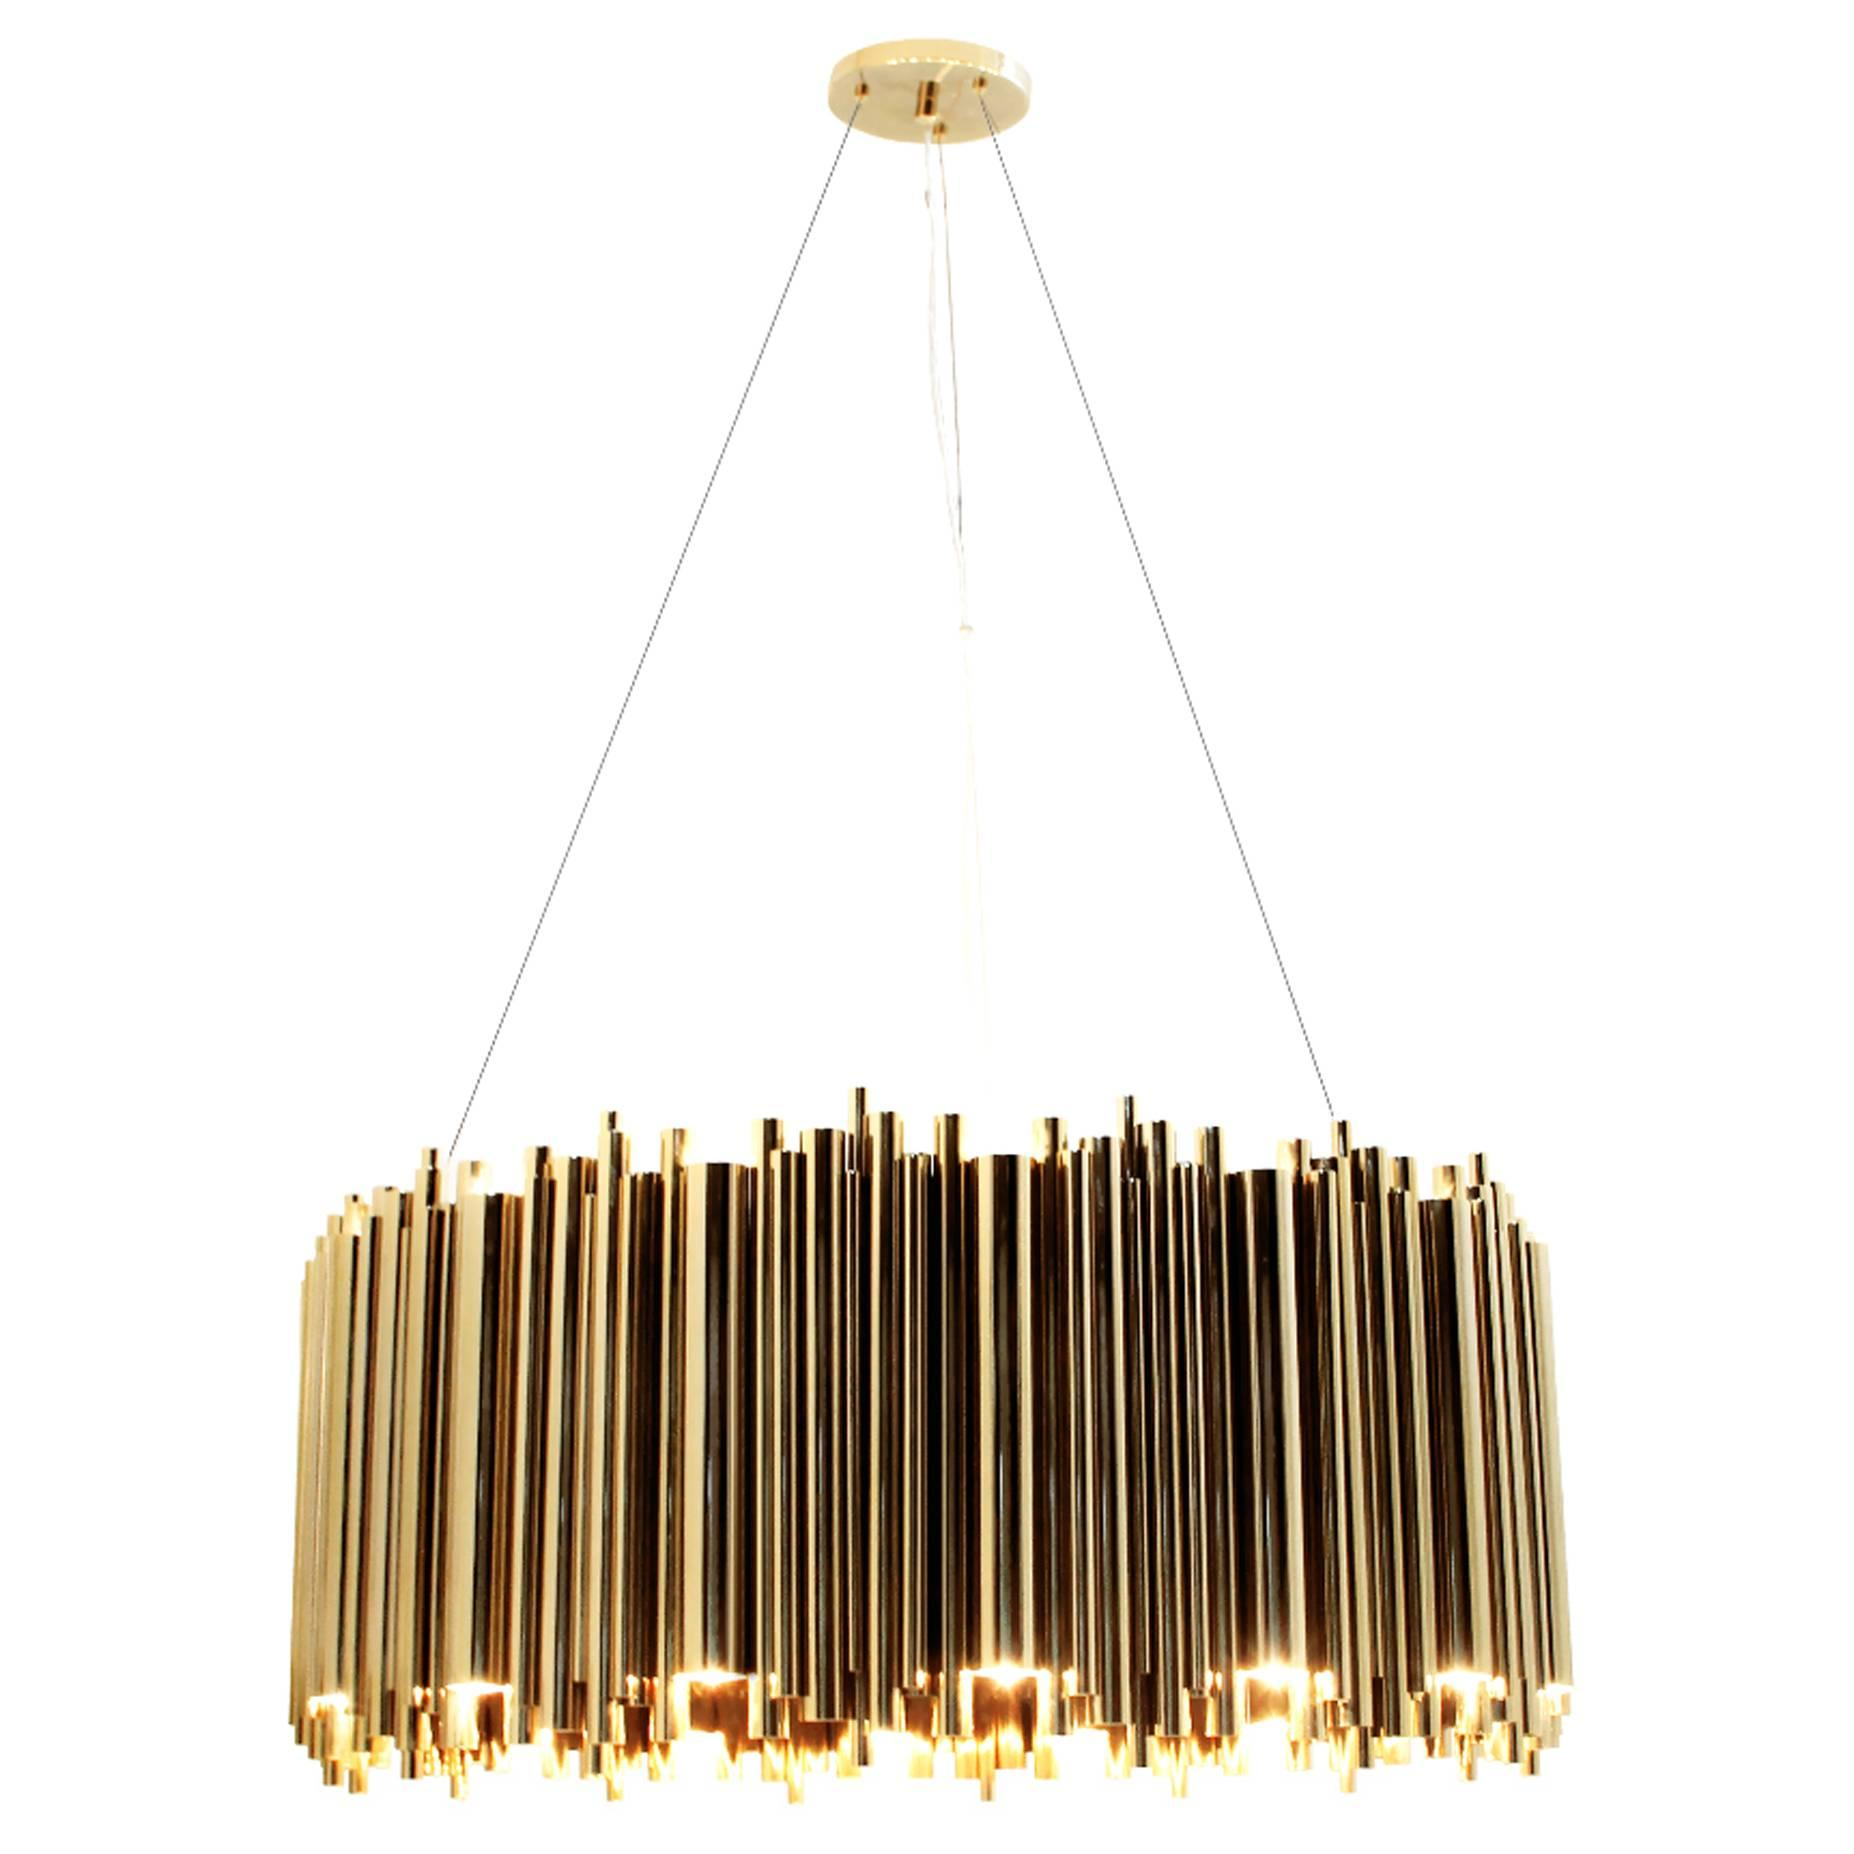 Have You Meet These Amazing Suspension Lamps Let Us Introduce To You 5